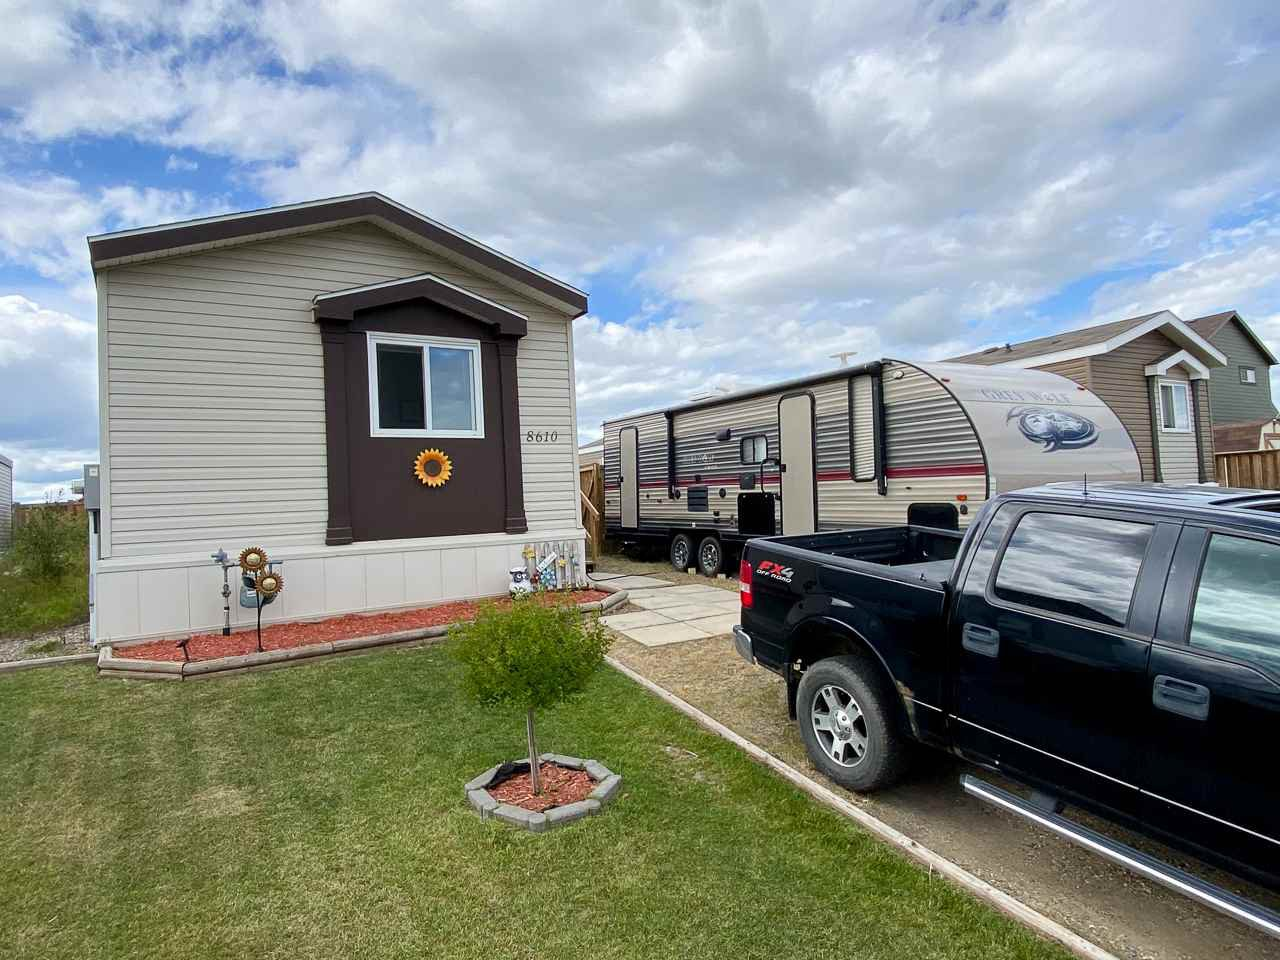 "Main Photo: 8610 79A Street in Fort St. John: Fort St. John - City SE Manufactured Home for sale in ""WINDFIELD ESTATES"" (Fort St. John (Zone 60))  : MLS®# R2484457"